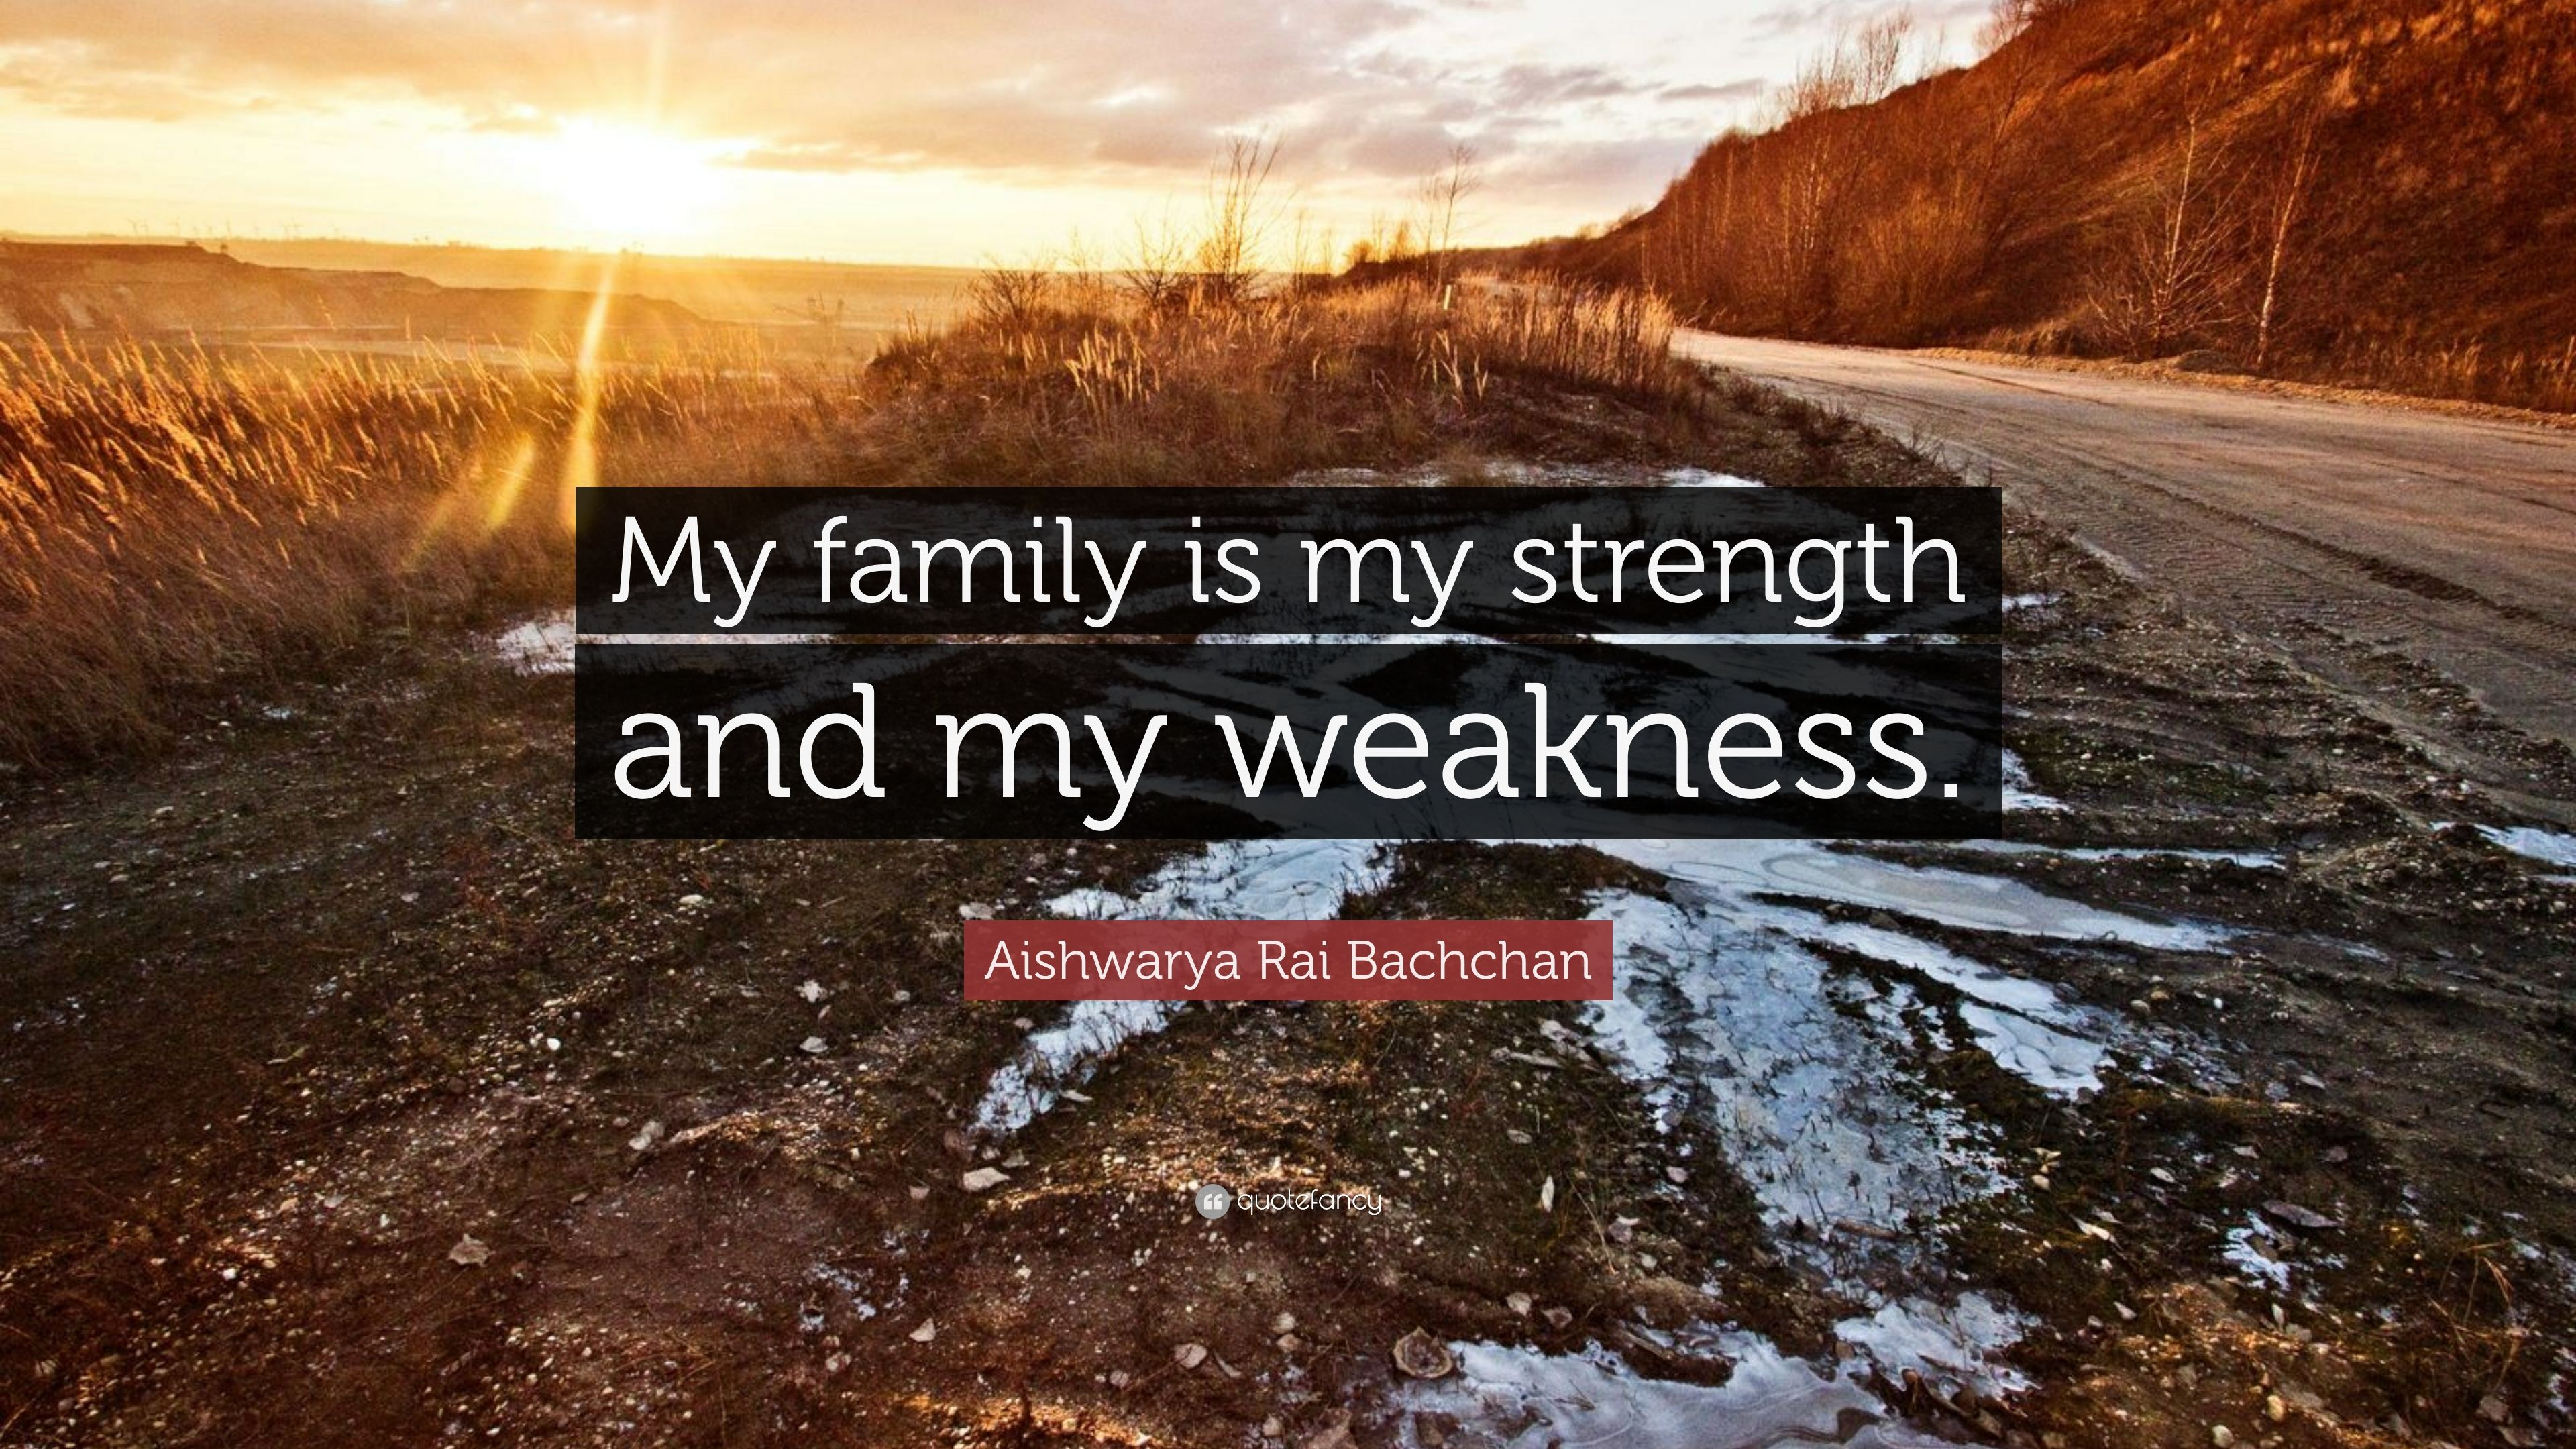 Aishwarya Rai Bachchan Quote My Family Is My Strength And My